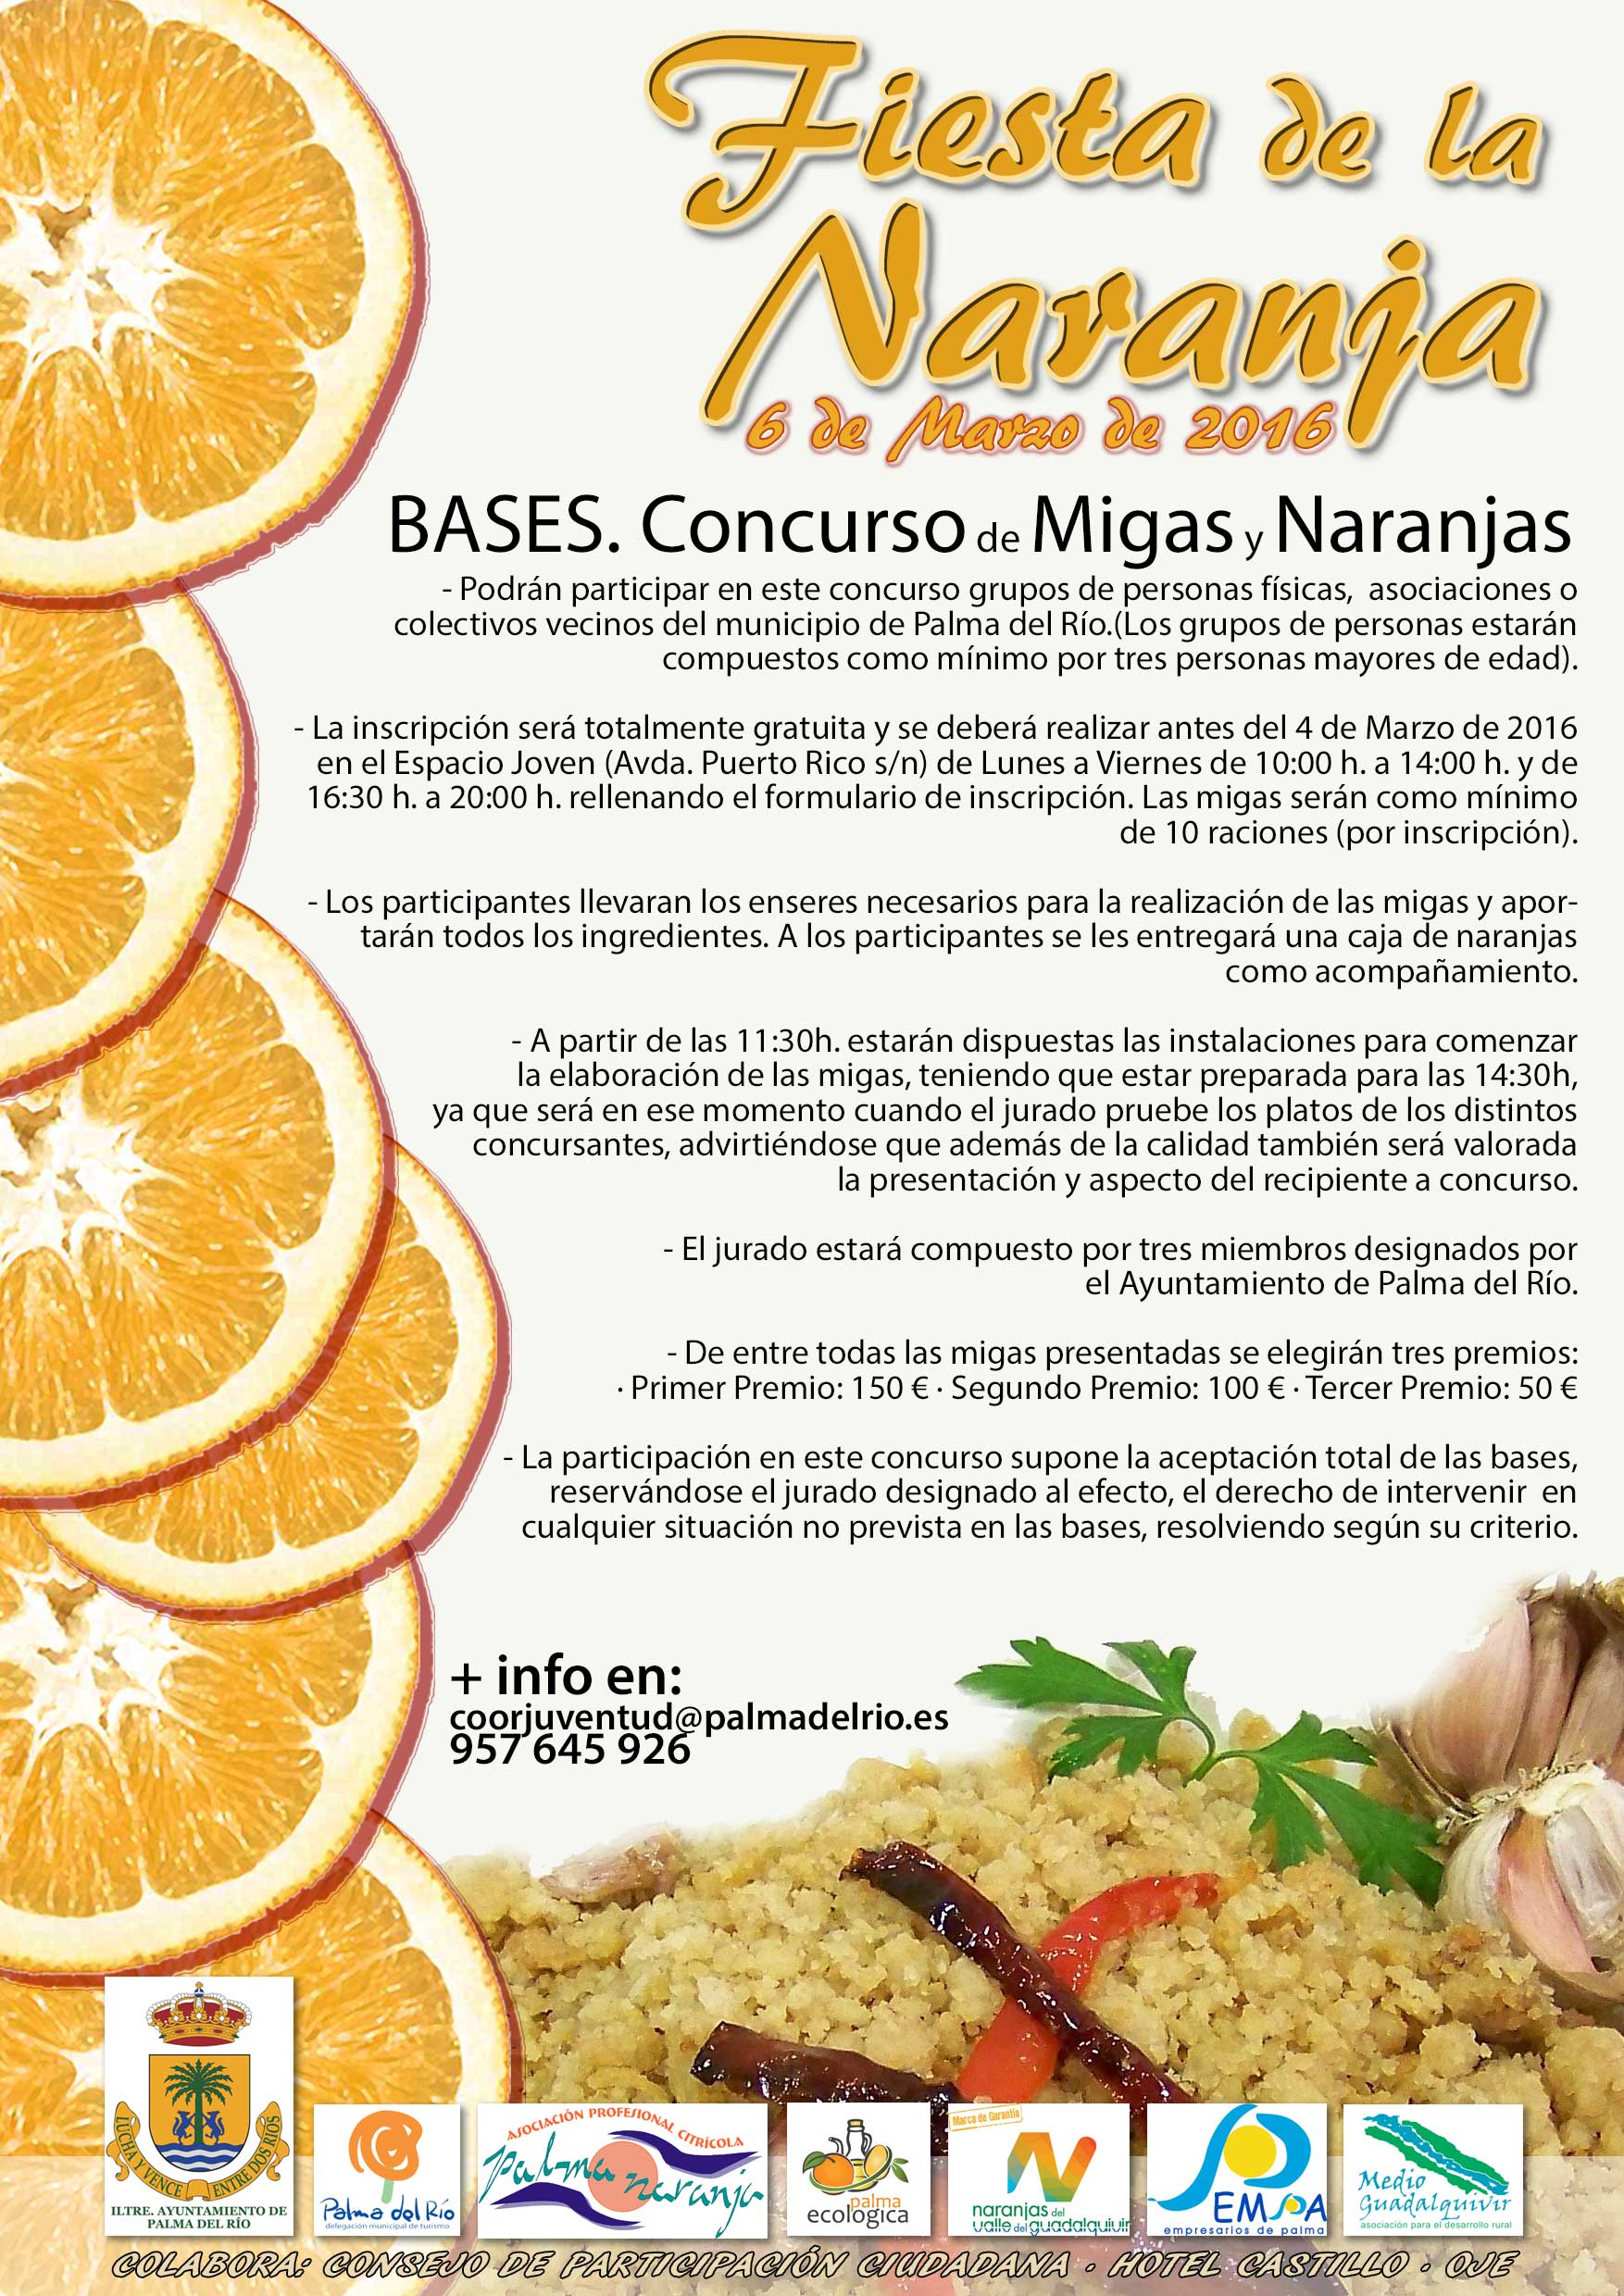 https://www.palmadelrio.es/sites/default/files/migas-fiesta-de-la-naranja-2016.jpg